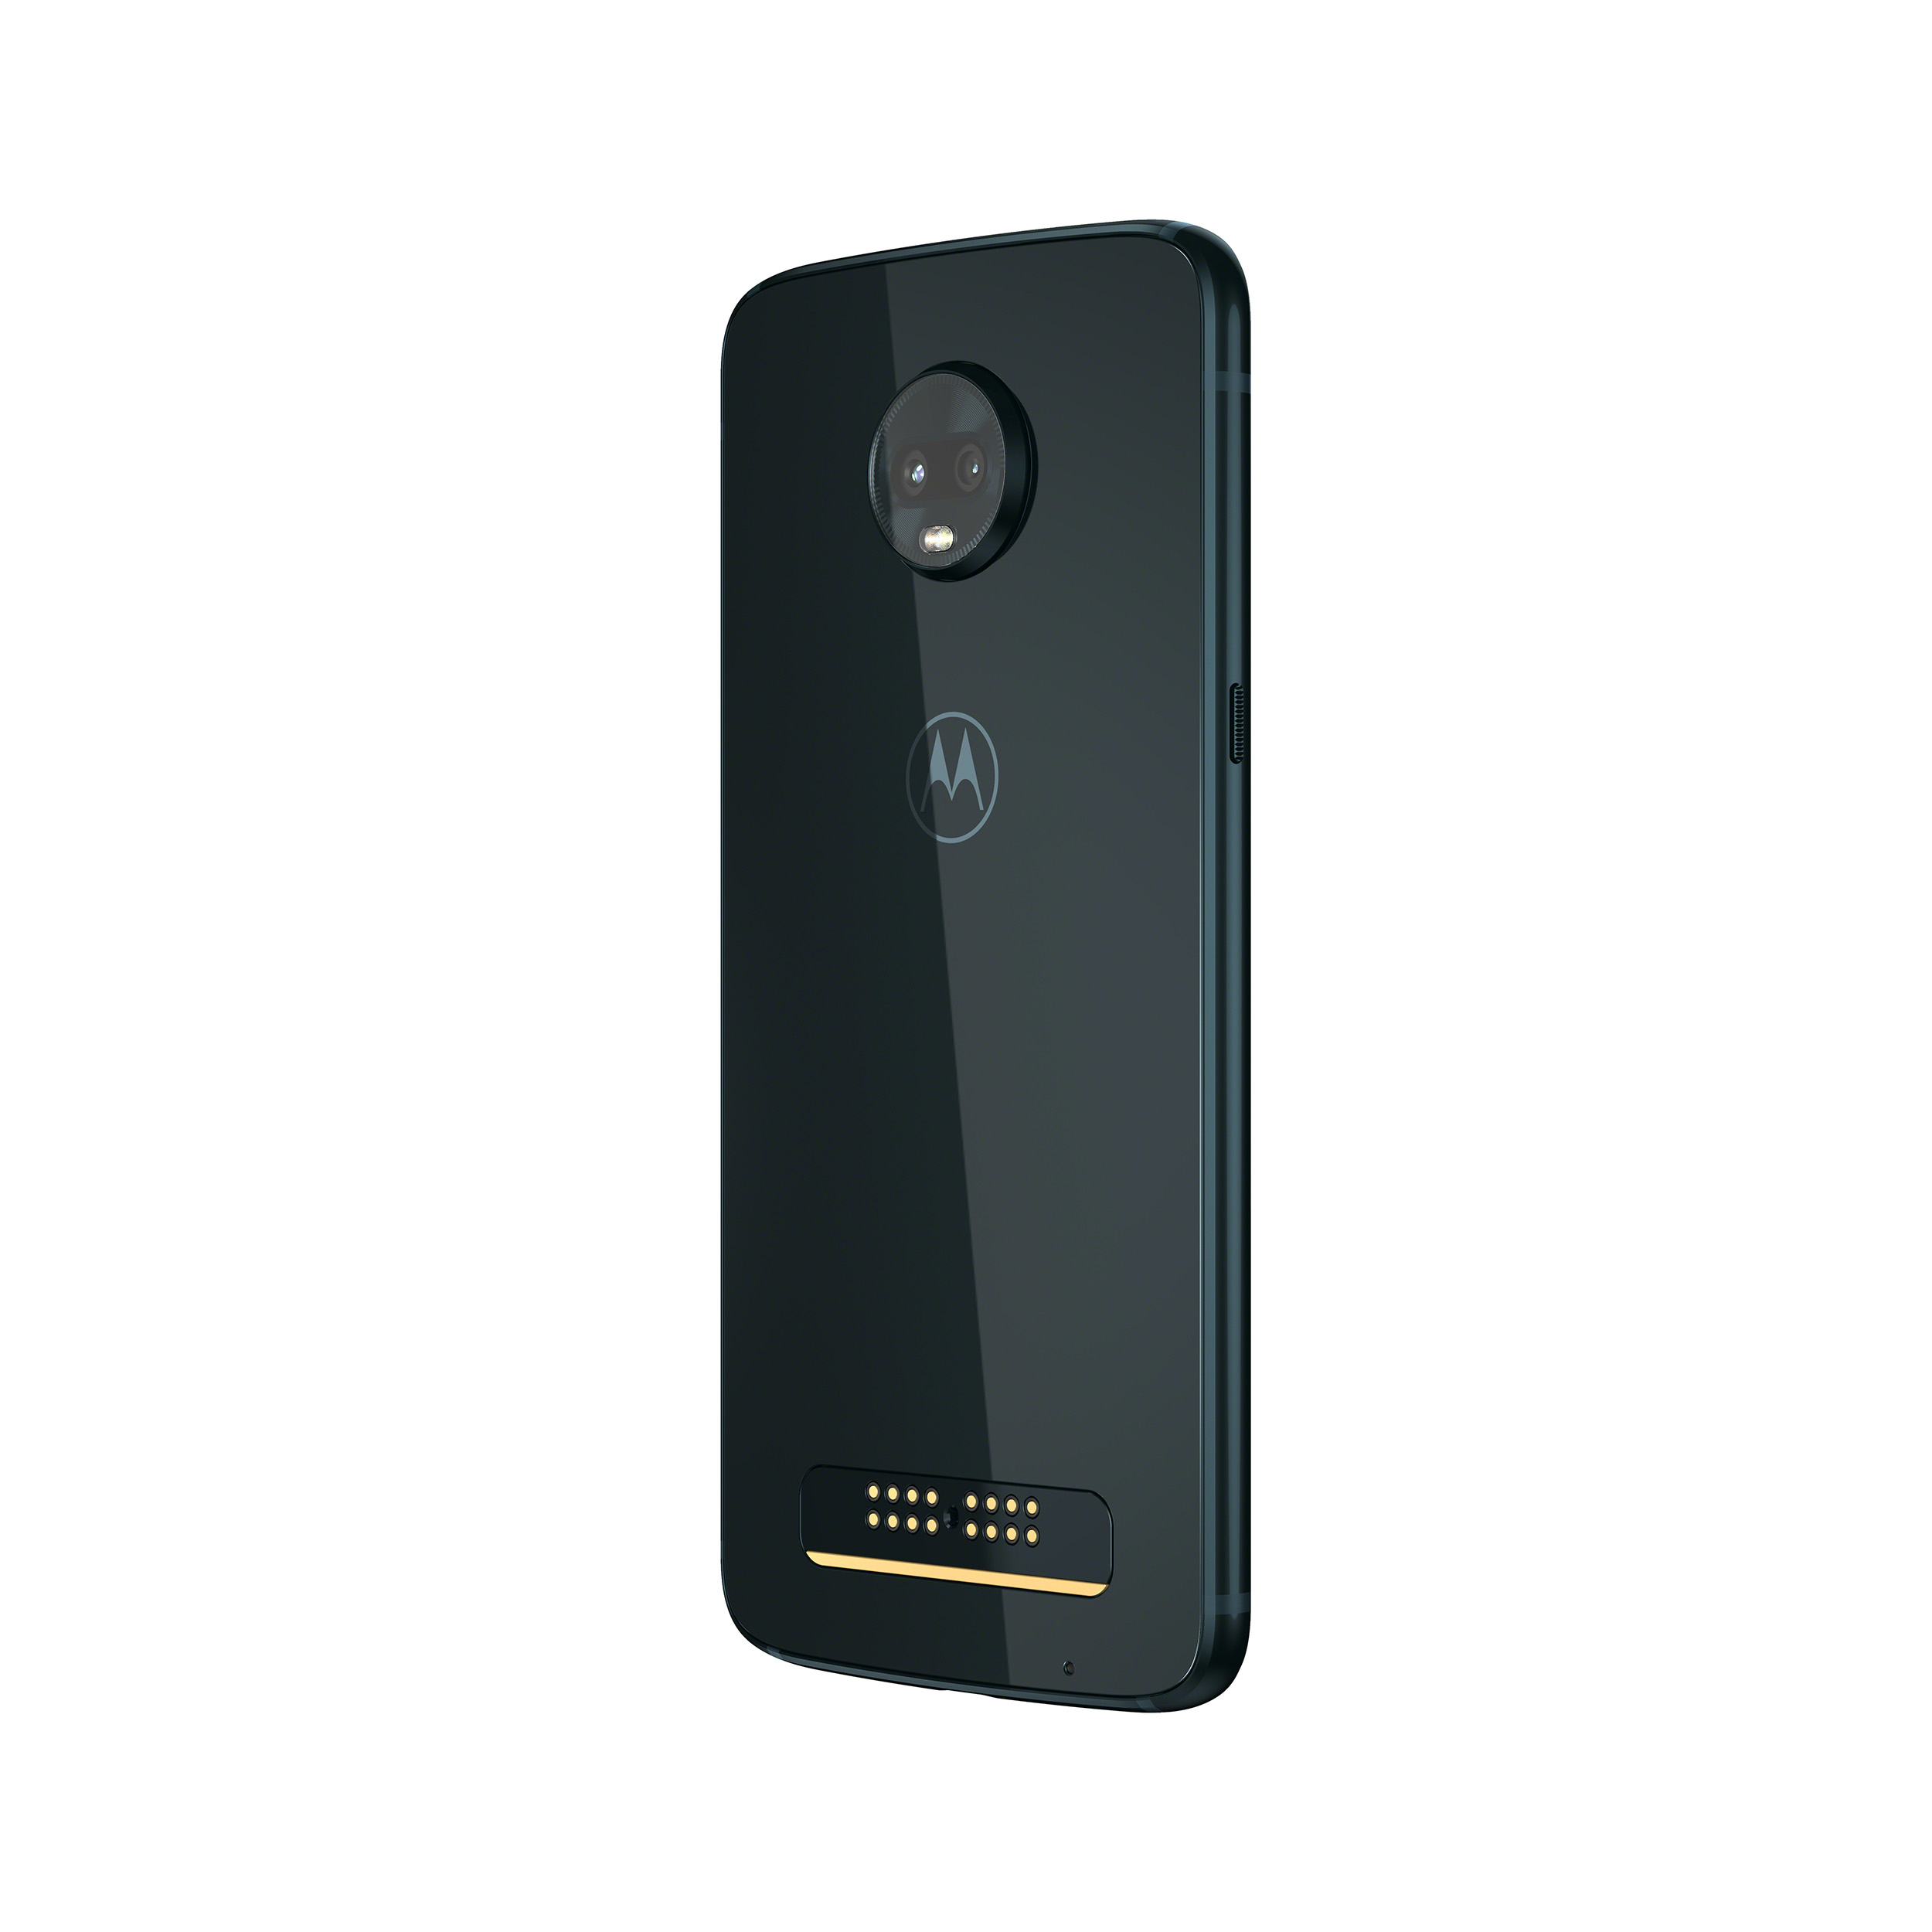 Moto Z3 Play goes official w/ Snapdragon 636, Google Lens in camera